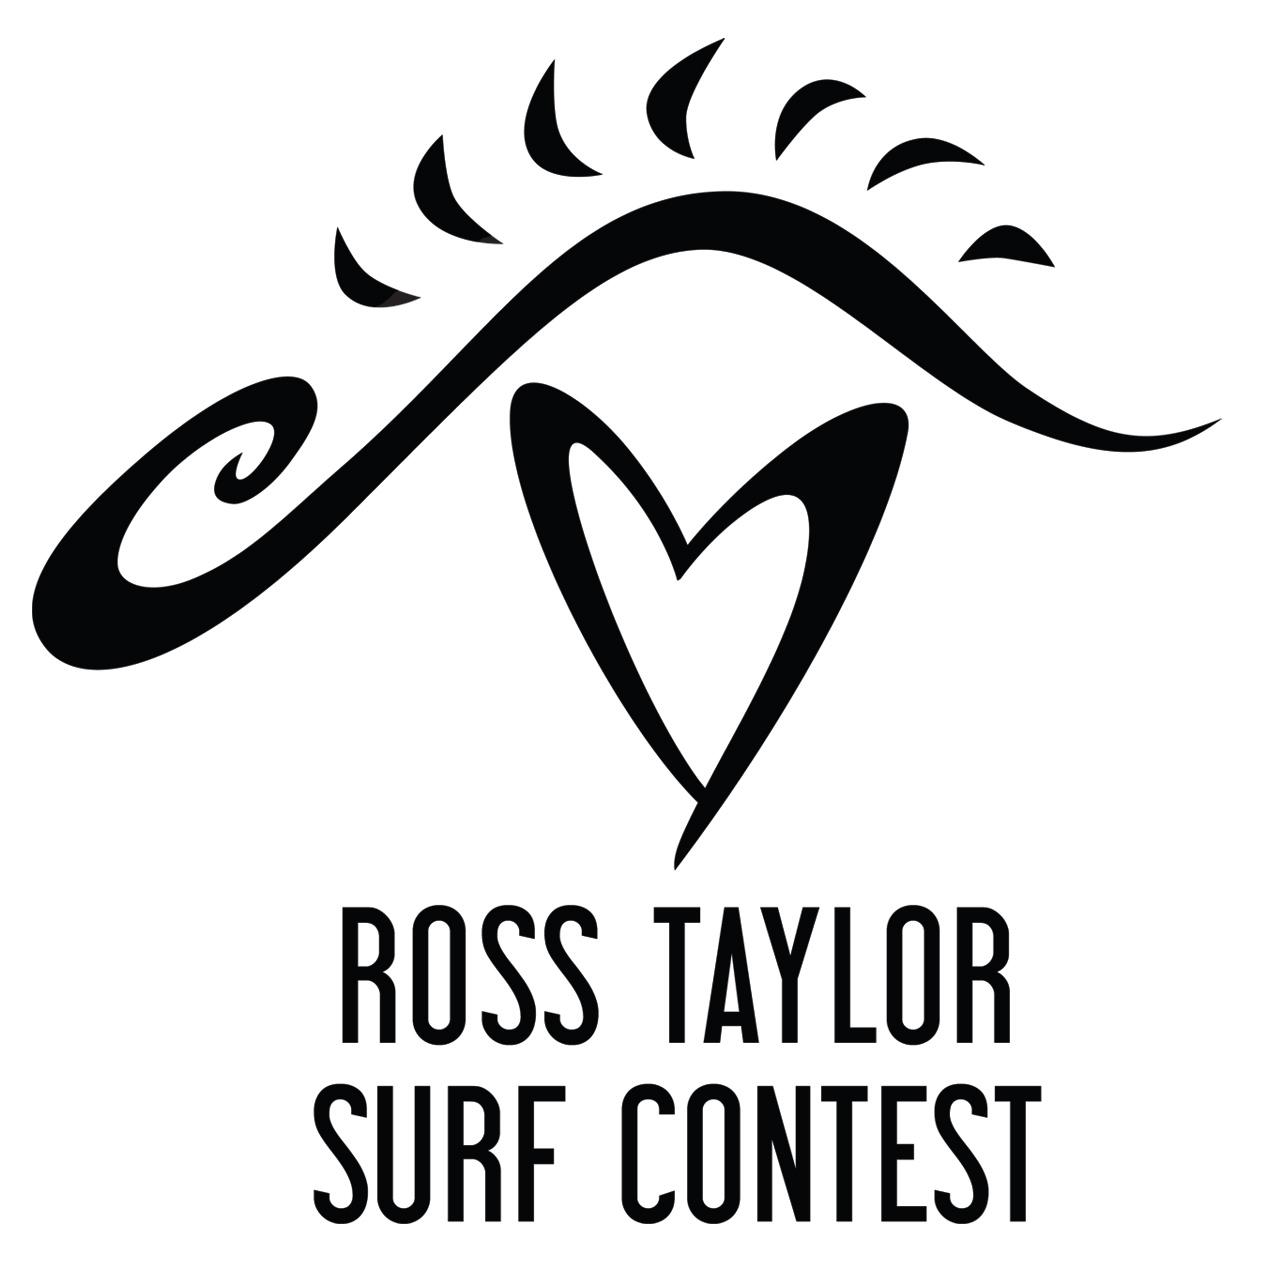 Ross Taylor No7 Surfing Competition